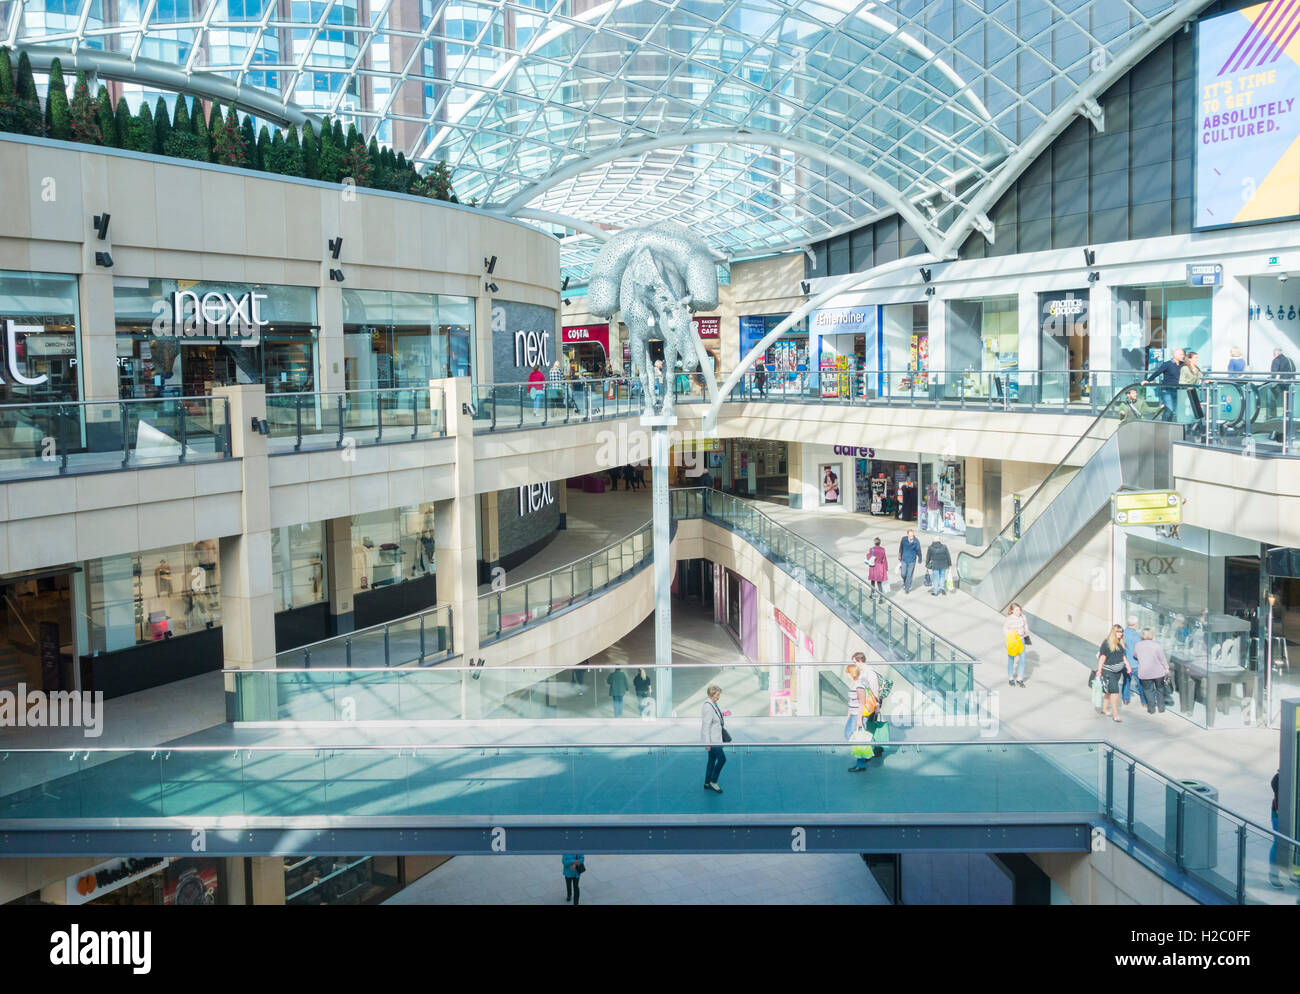 Trinity Leeds shopping centre. Leeds, Yorkshire, England.UK - Stock Image